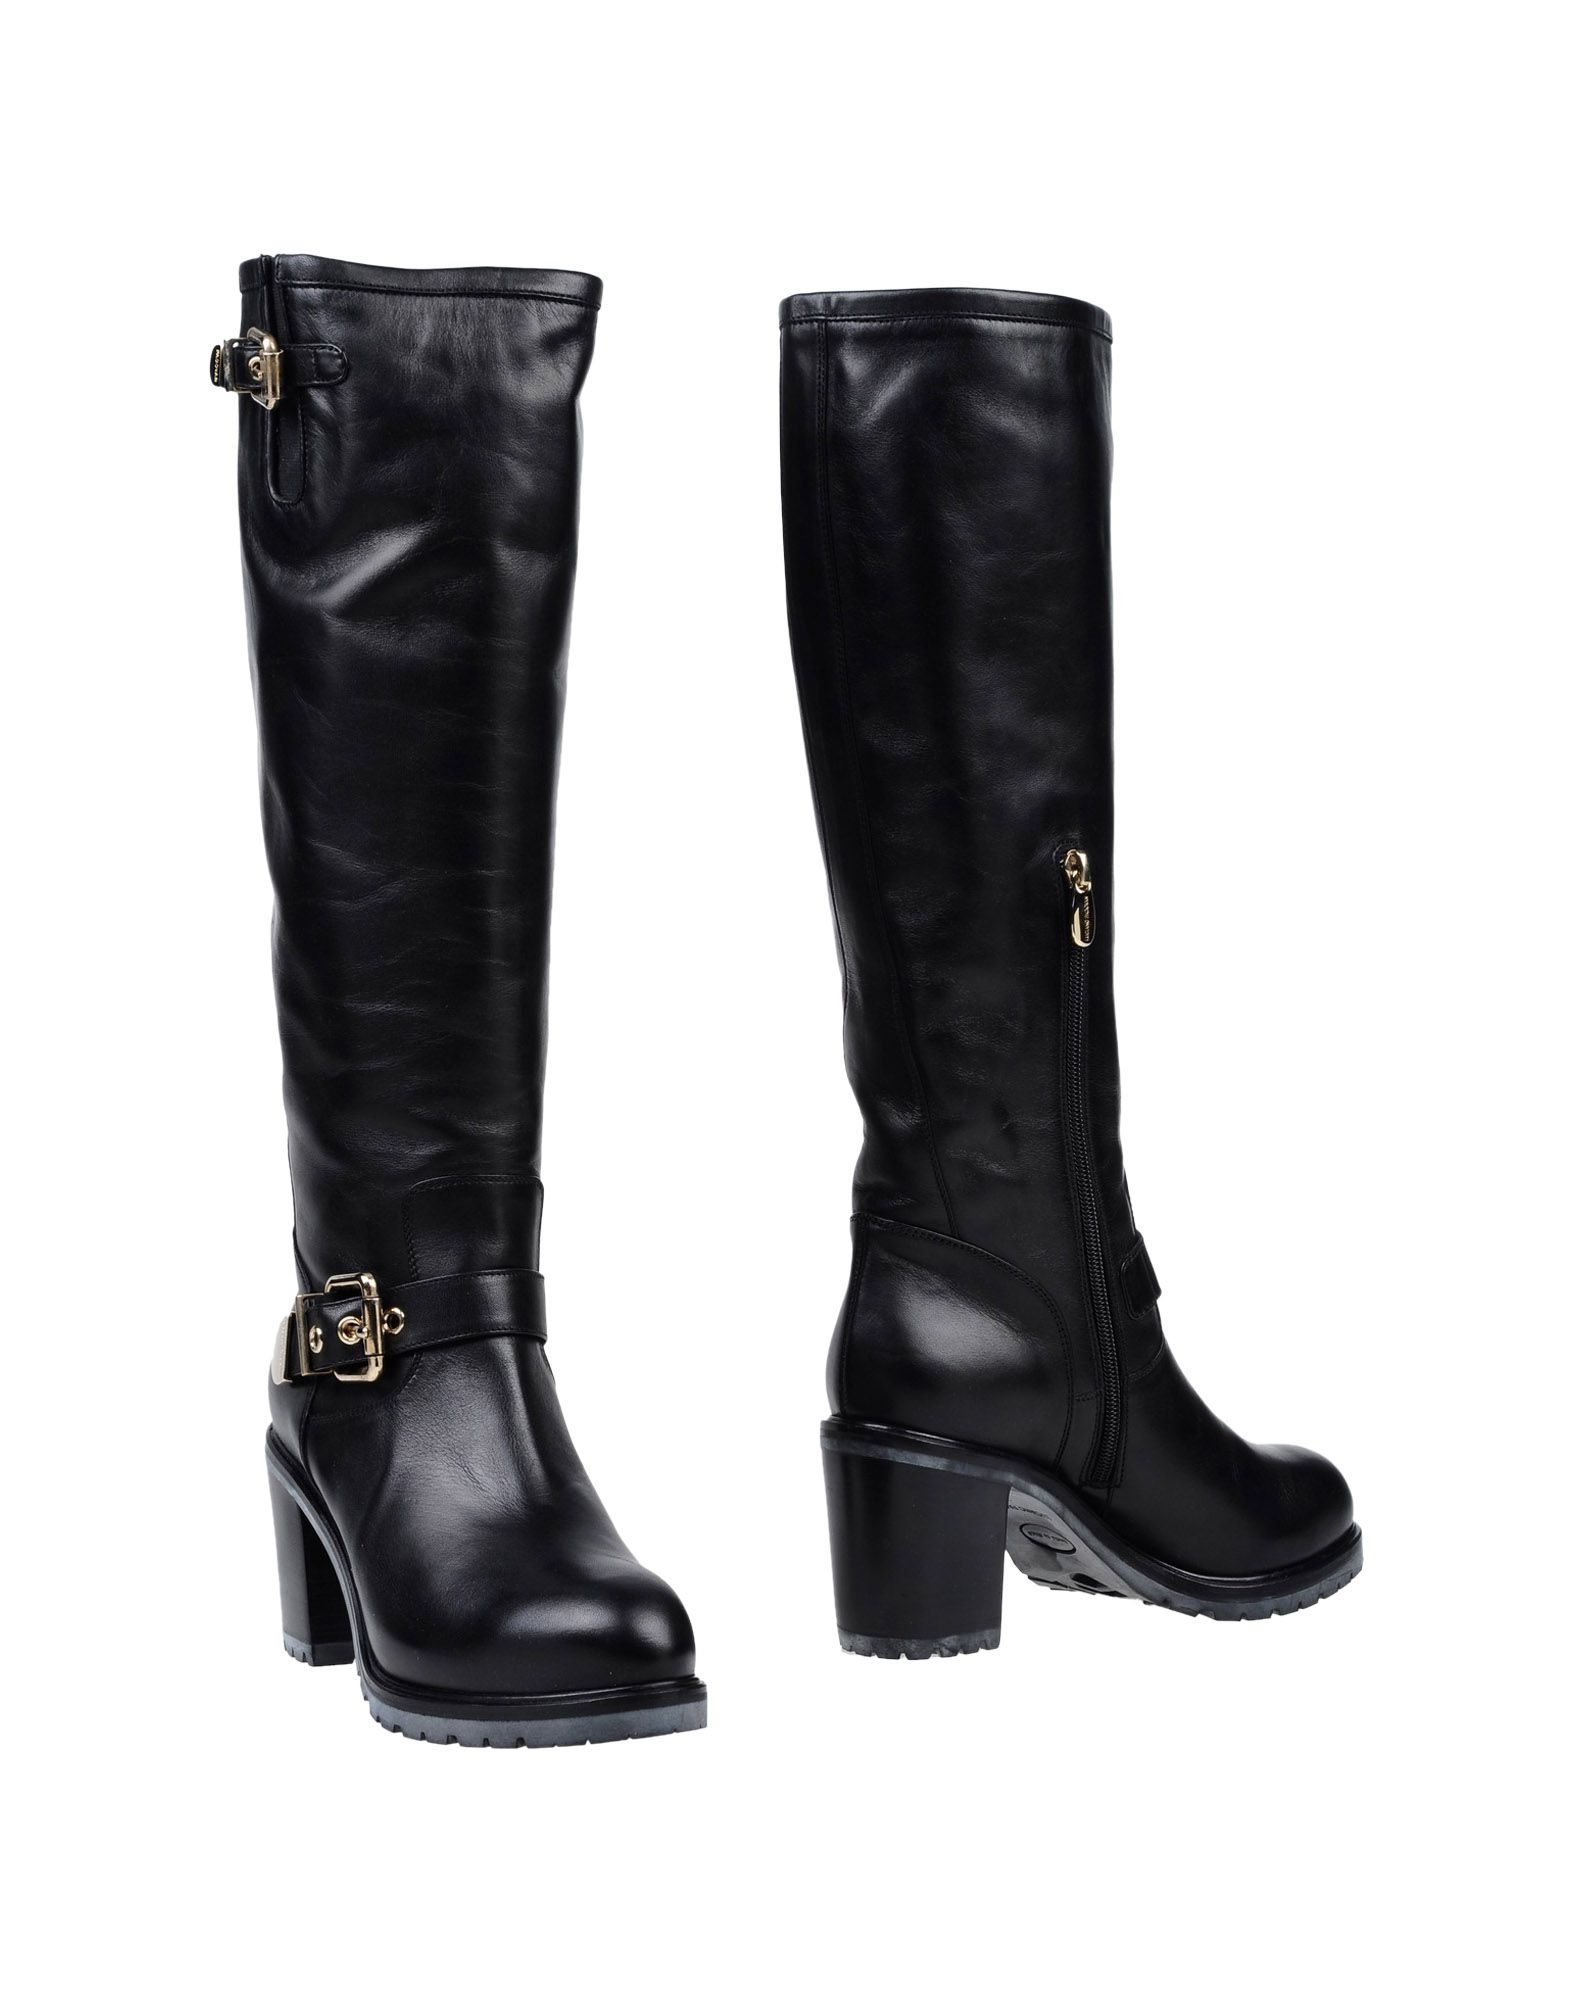 Bottes Luciano Padovan Femme - Bottes Luciano Padovan sur